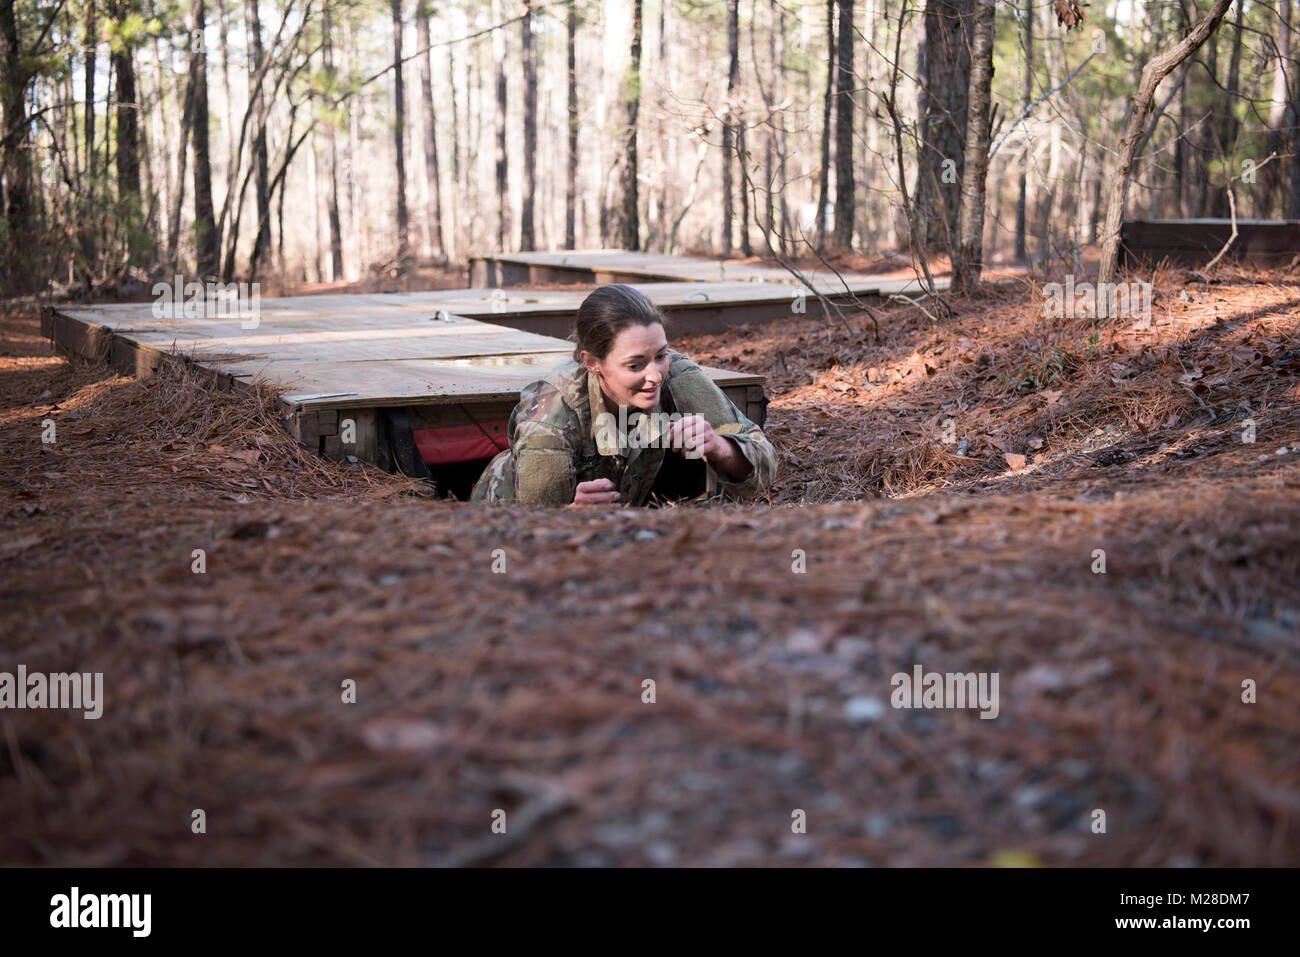 Spc. Michelle Green, combat medic, Medical Command, South Carolina Army National Guard, crawls out of an obstacle Stock Photo